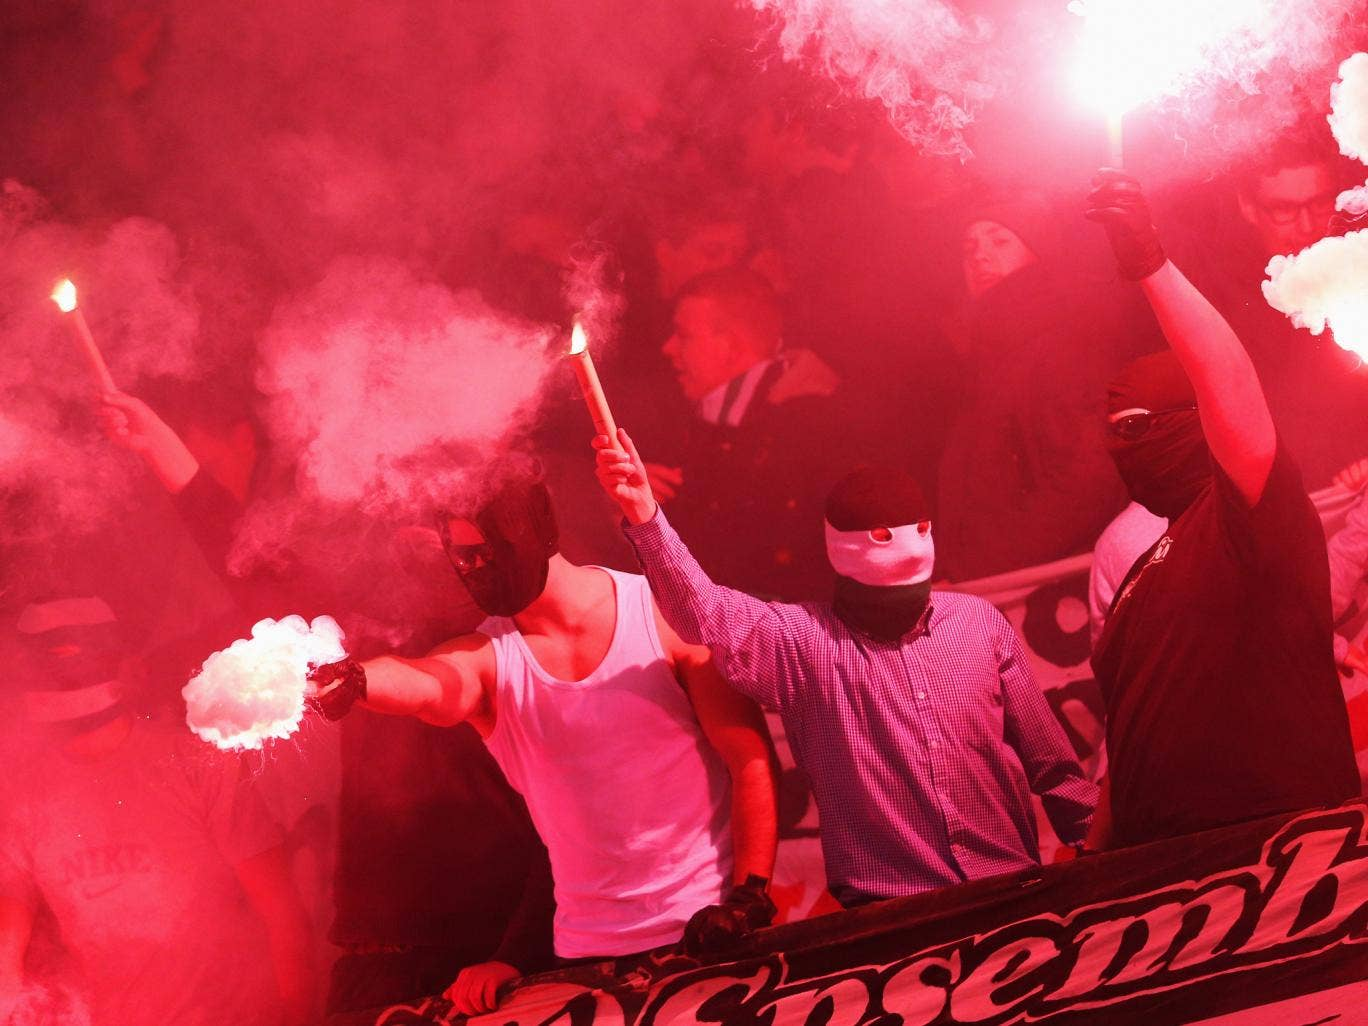 There were violent clashes between Hanover 96 and Dynamo Dresden fans in the German Cup